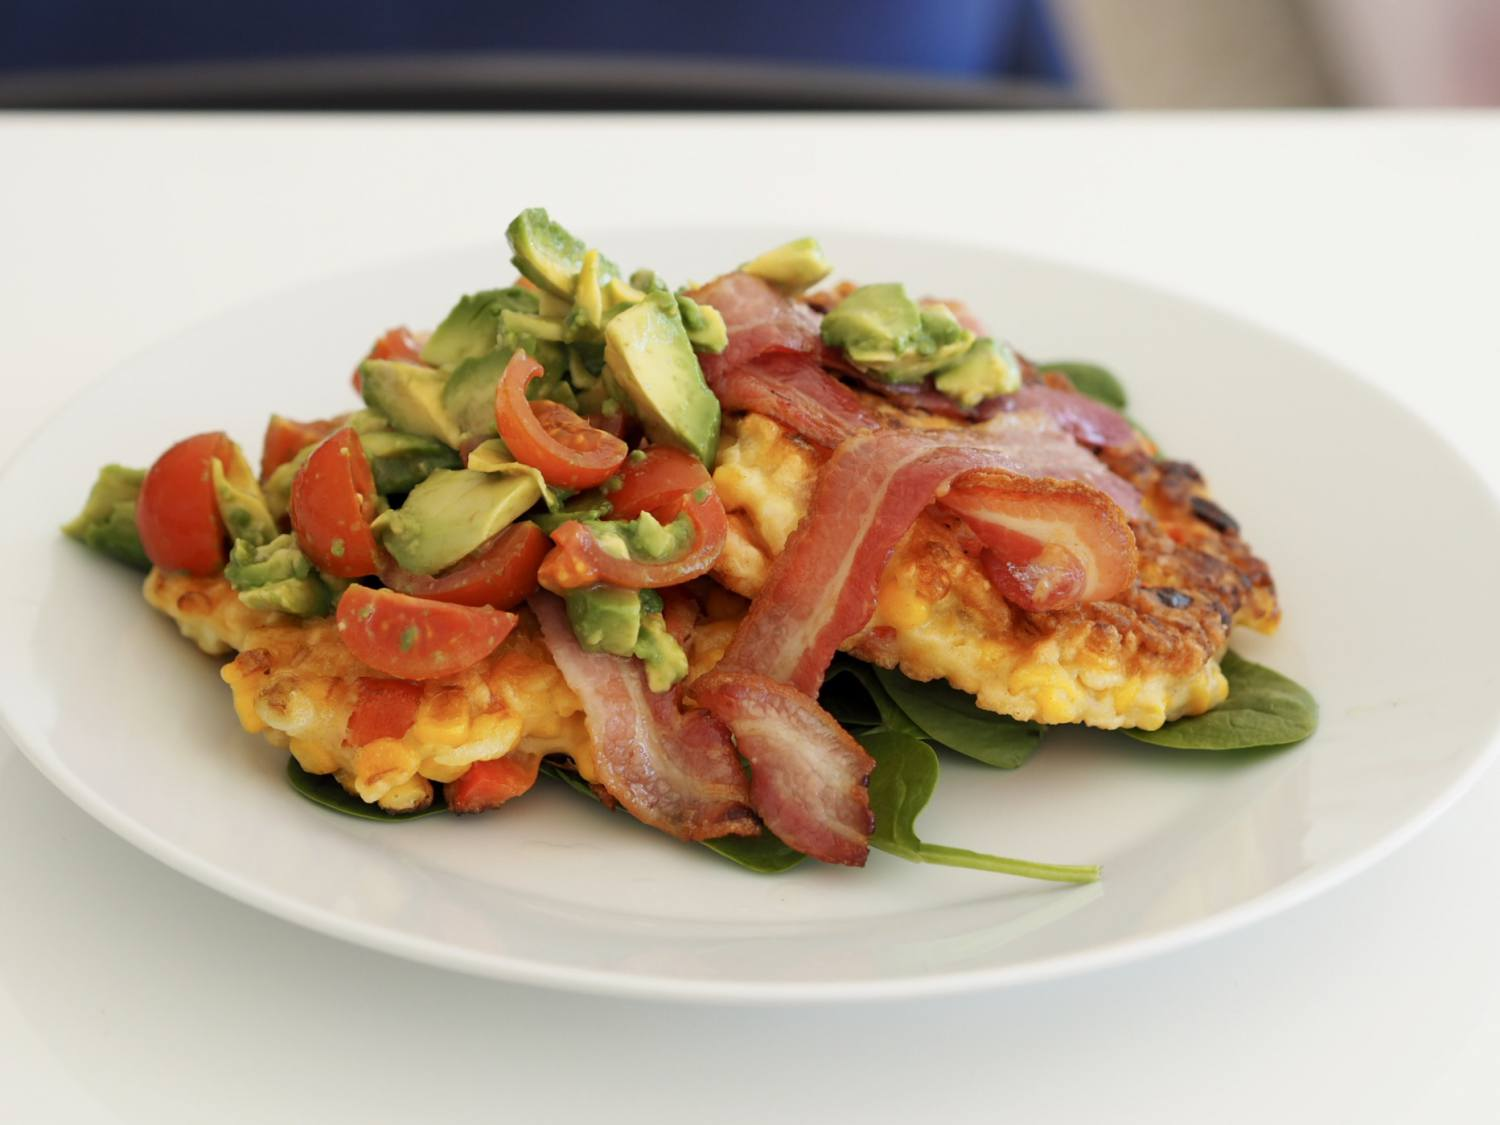 Sweetcorn fritter recipe